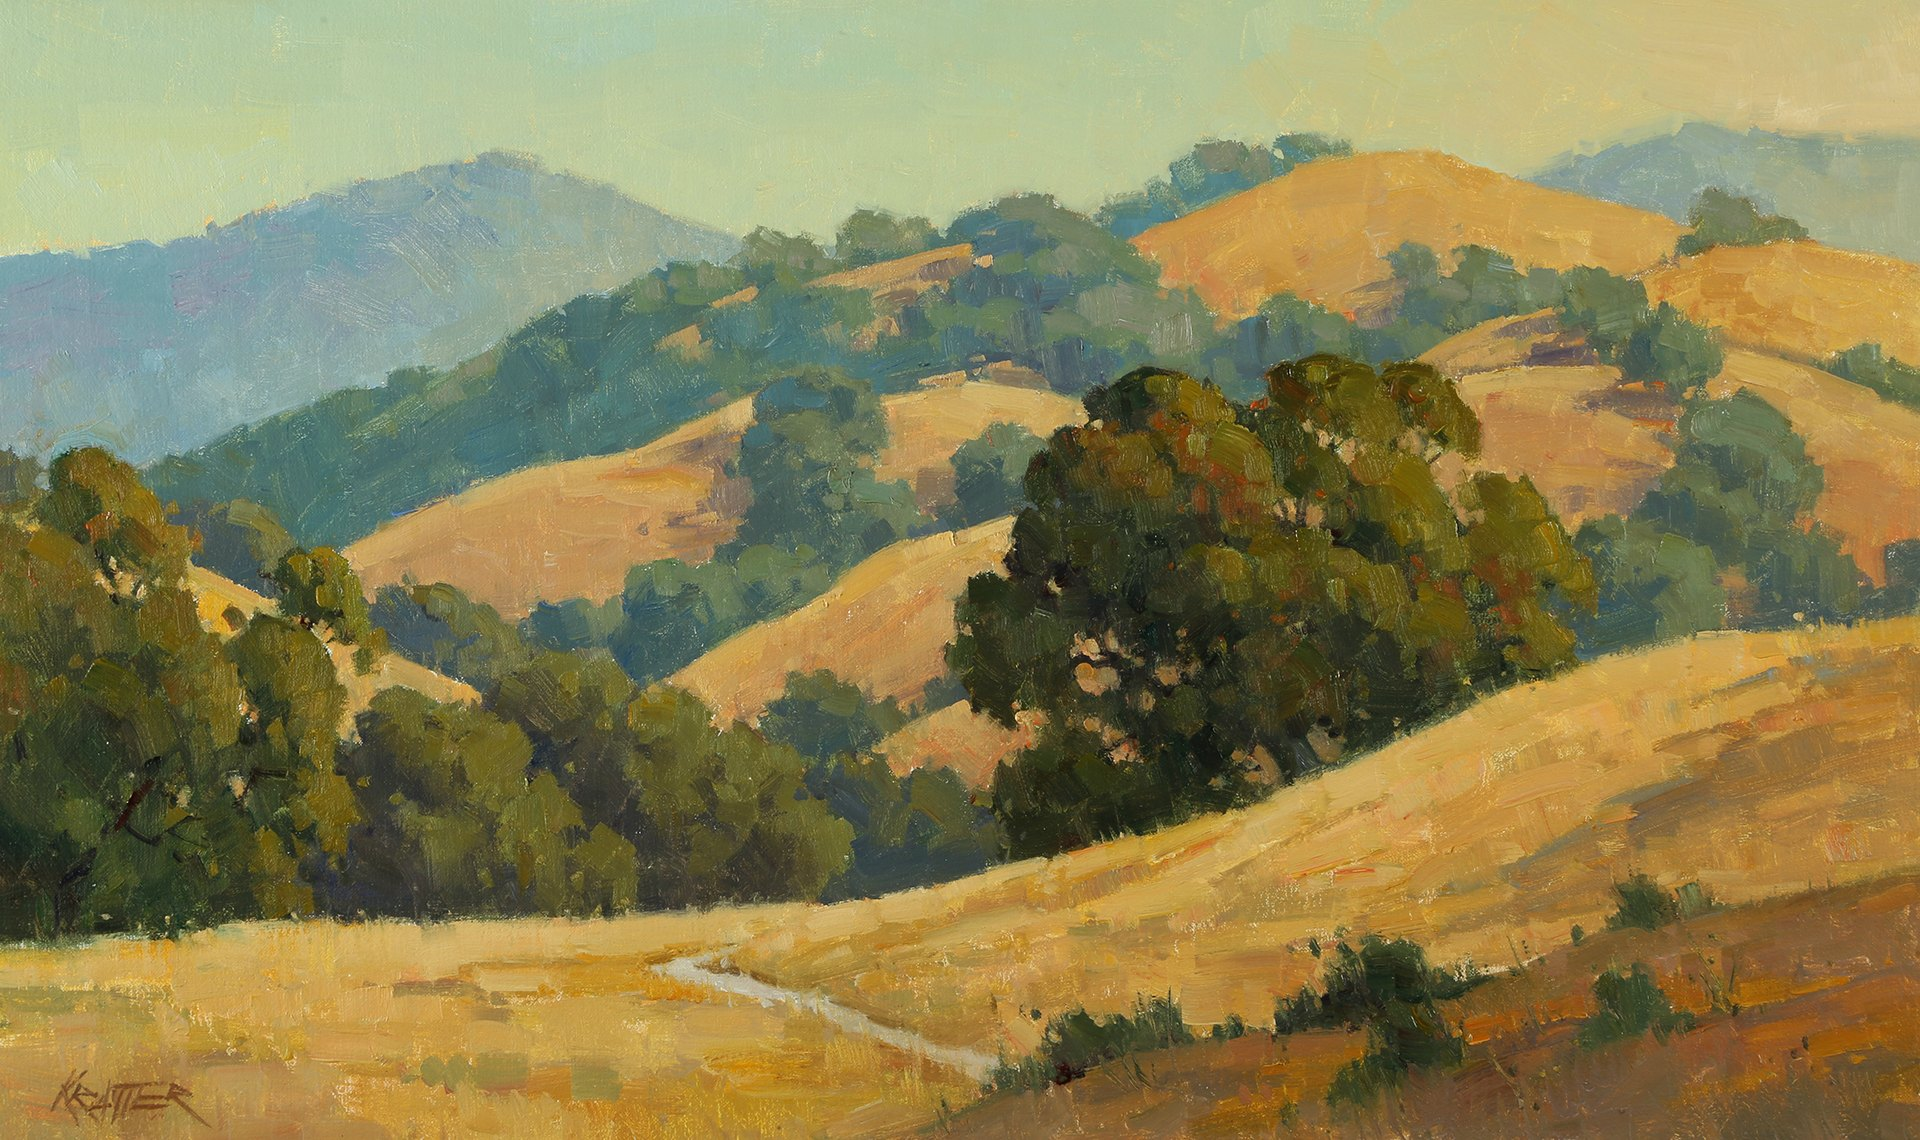 Laguna Invitational Artist Paul Kratter